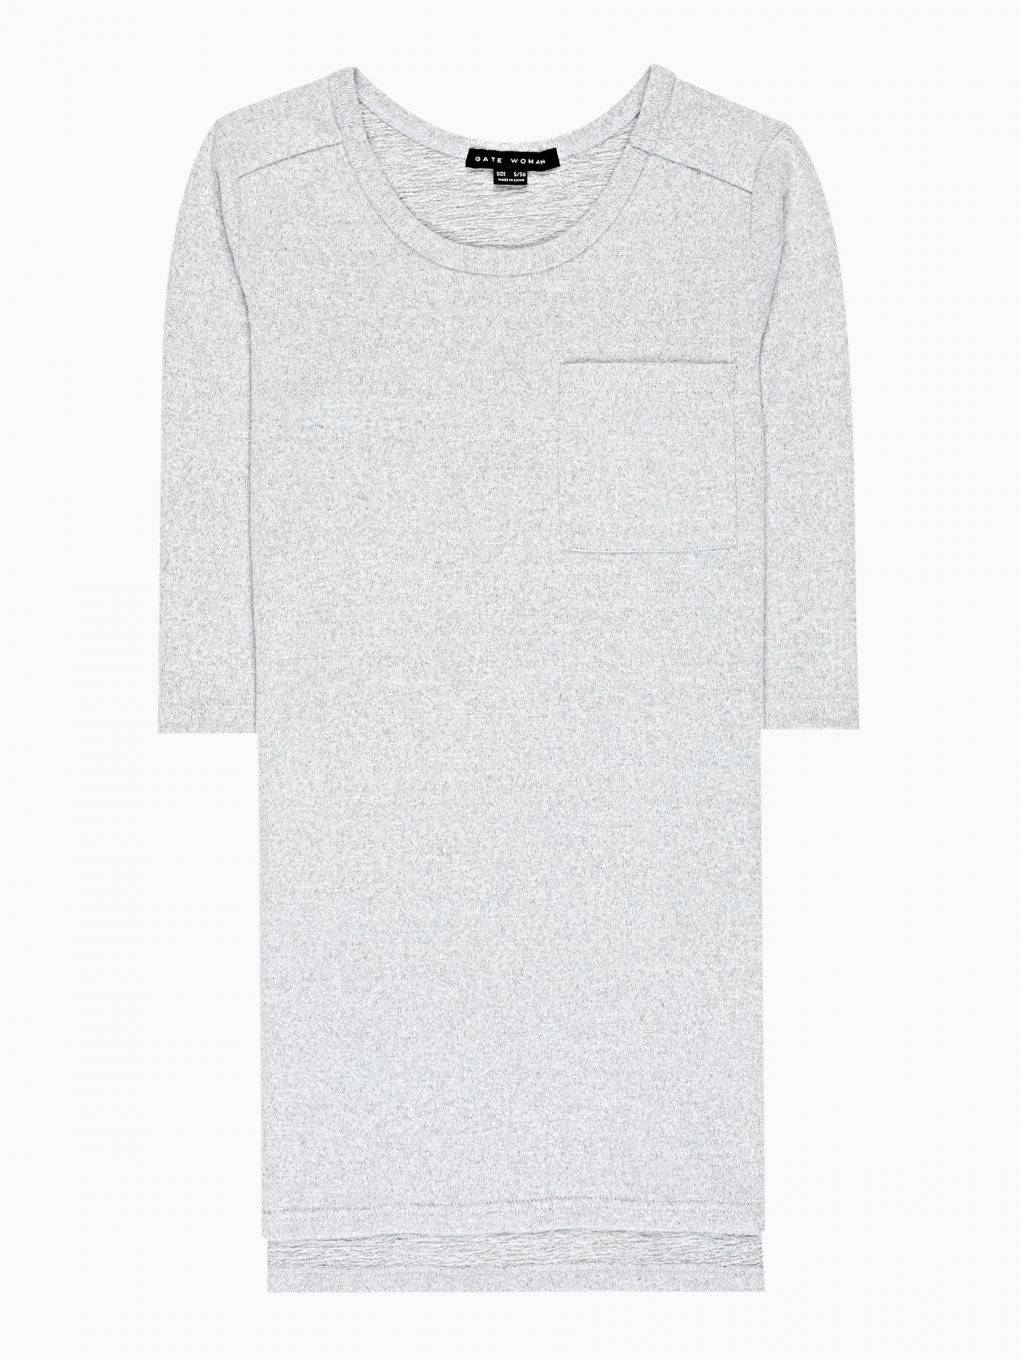 LONGLINE T-SHIRT WITH CHEST POCKET